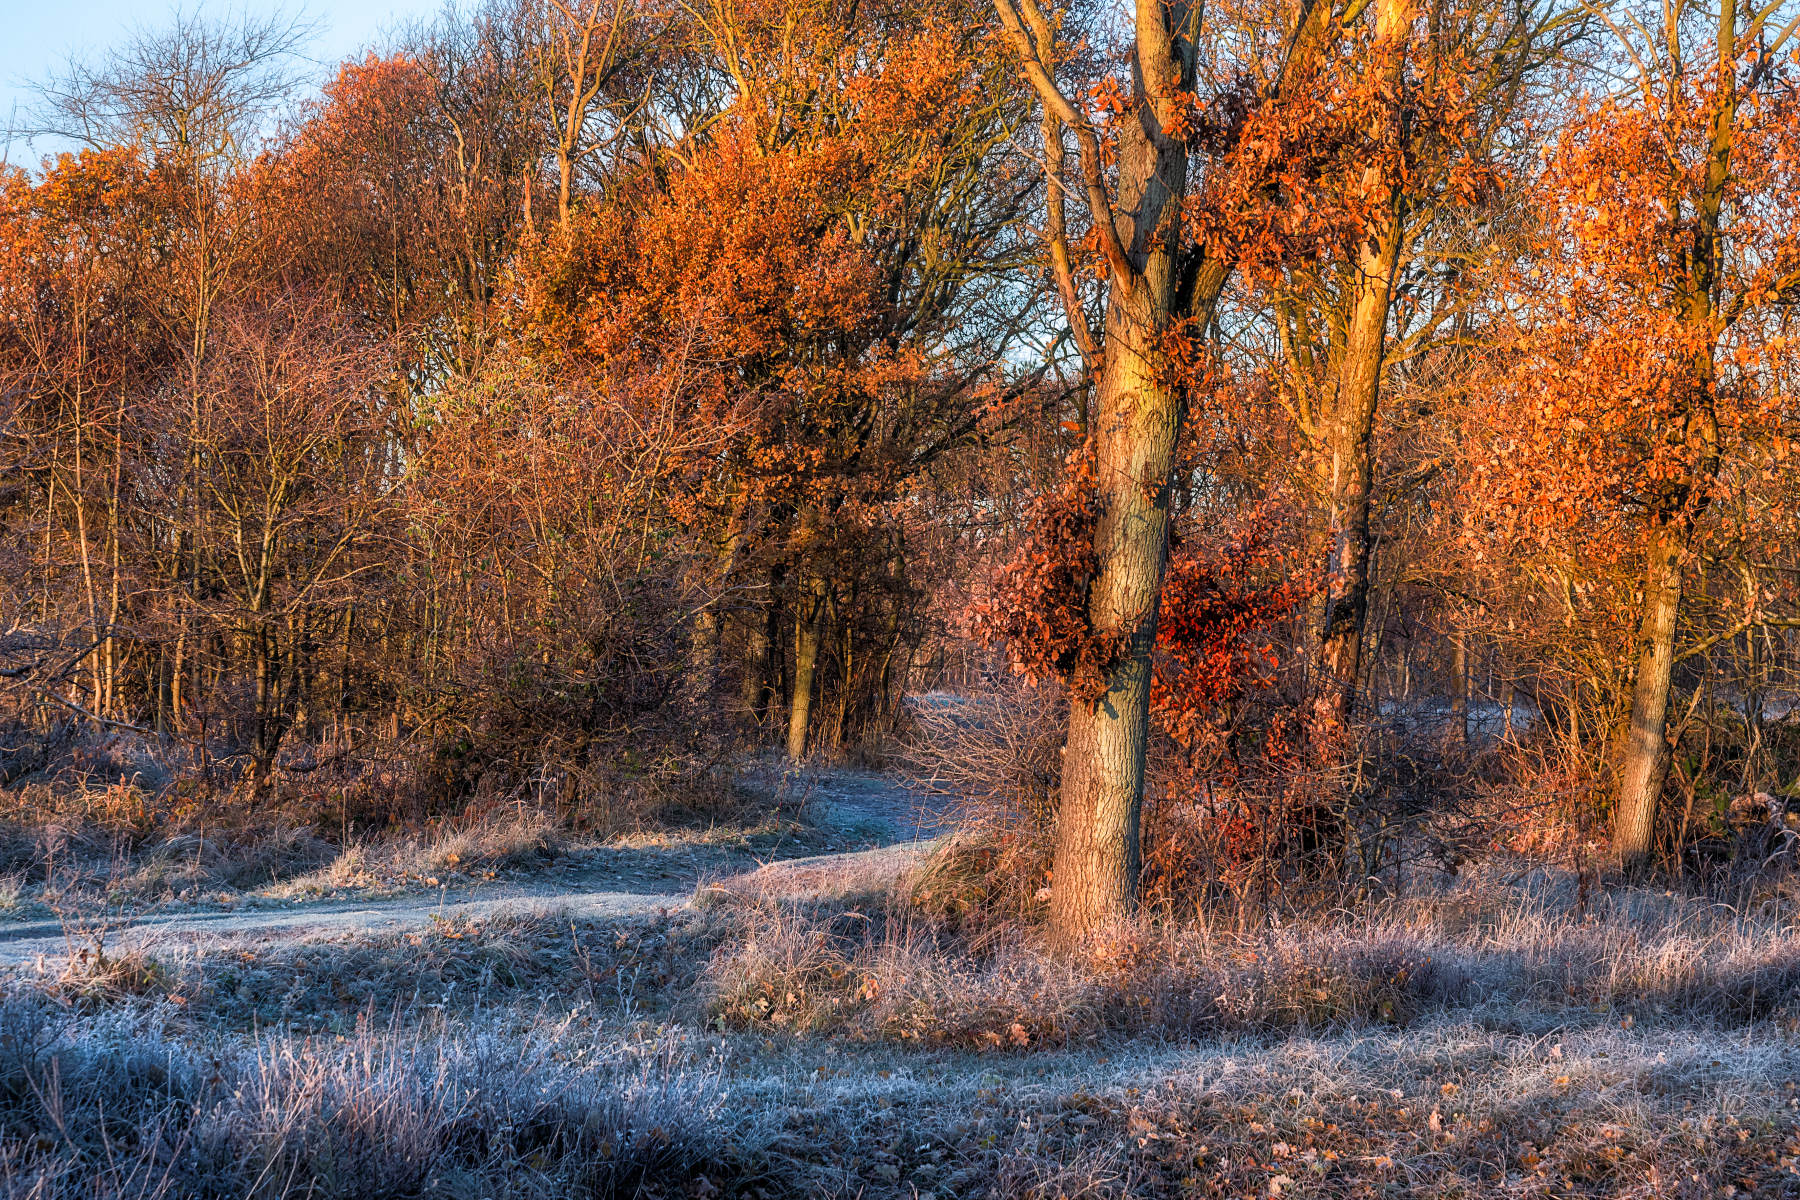 frosty morning with blazing colors